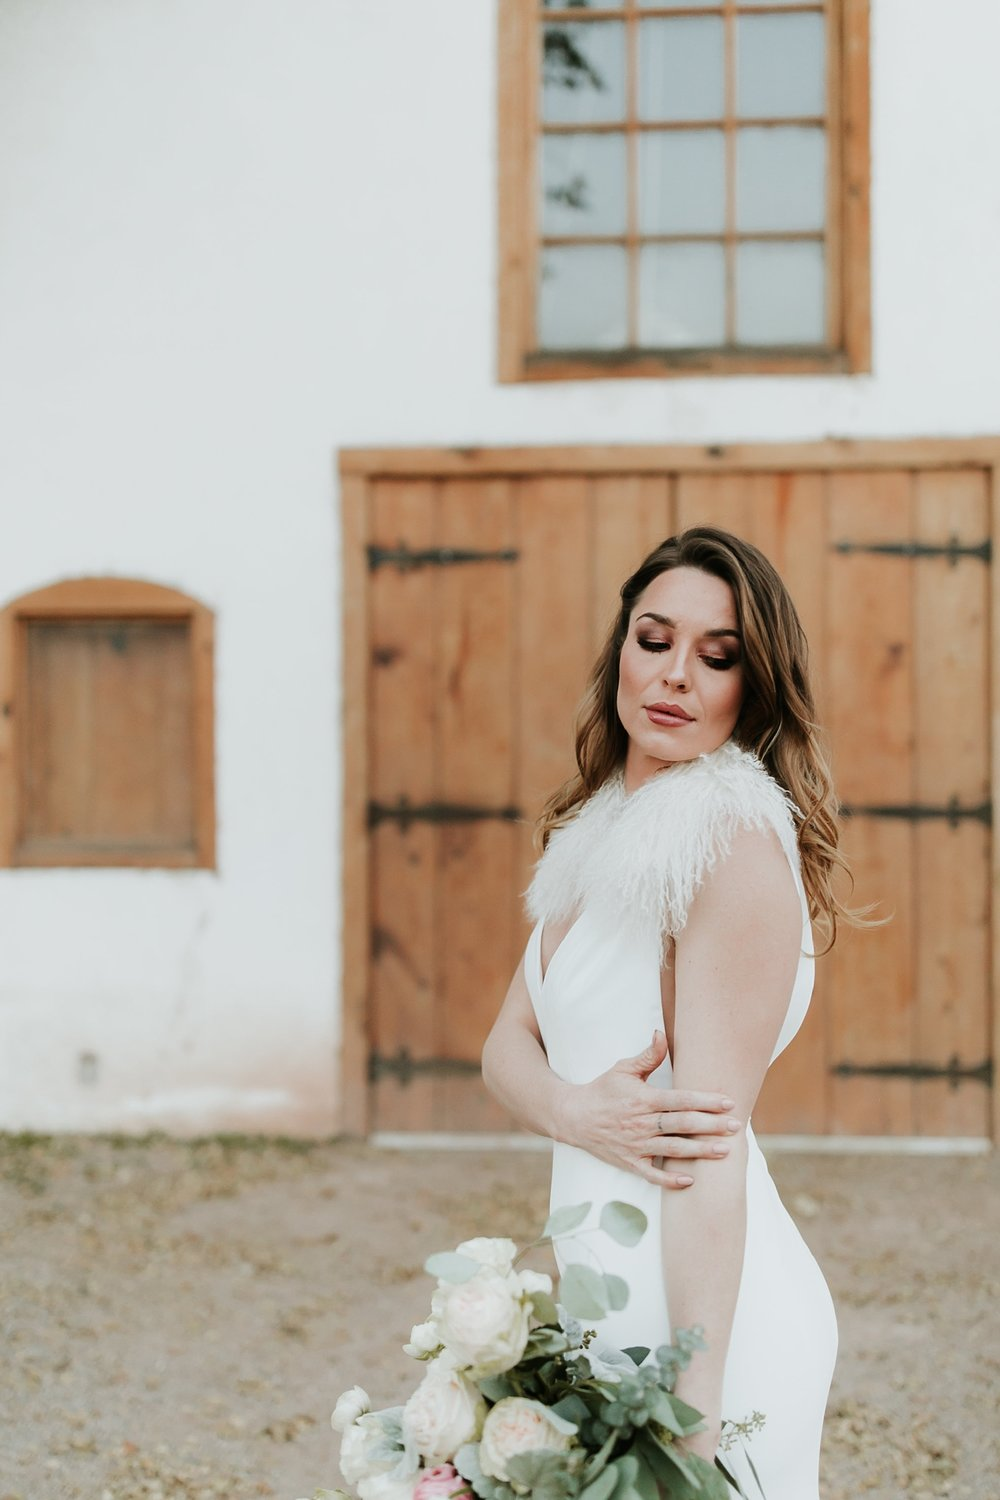 Alicia+lucia+photography+-+albuquerque+wedding+photographer+-+santa+fe+wedding+photography+-+new+mexico+wedding+photographer+-+bridal+shoot+-+styled+bridal+shoot+-+southwest+bride_0022.jpg